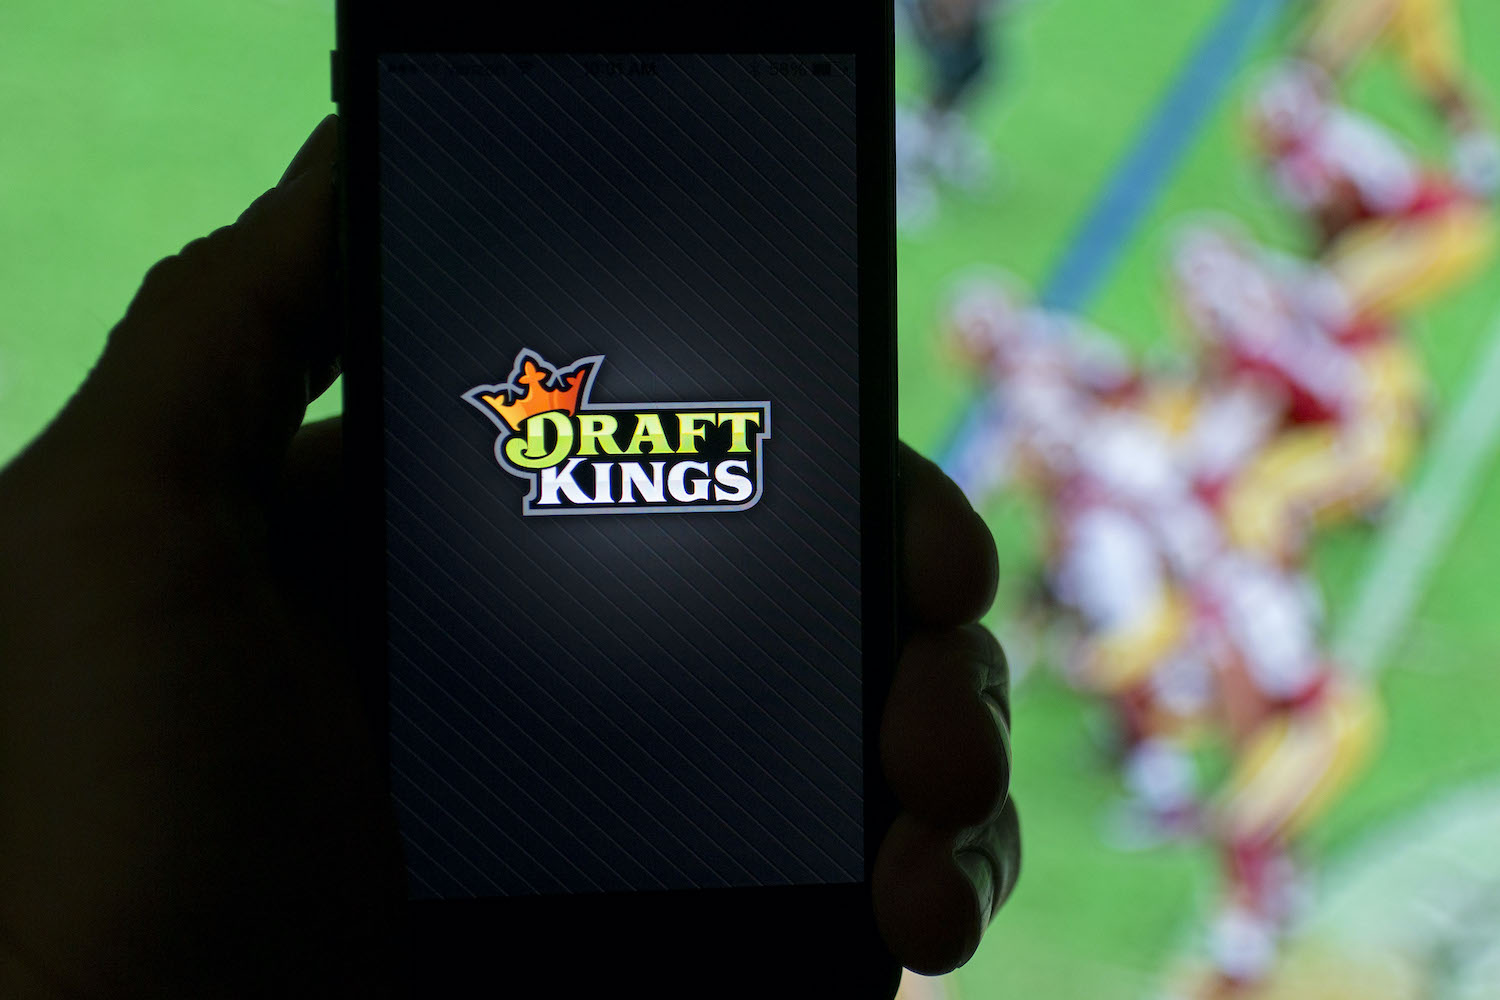 DraftKings Charts NFT Long-Game With Marketplace Debut